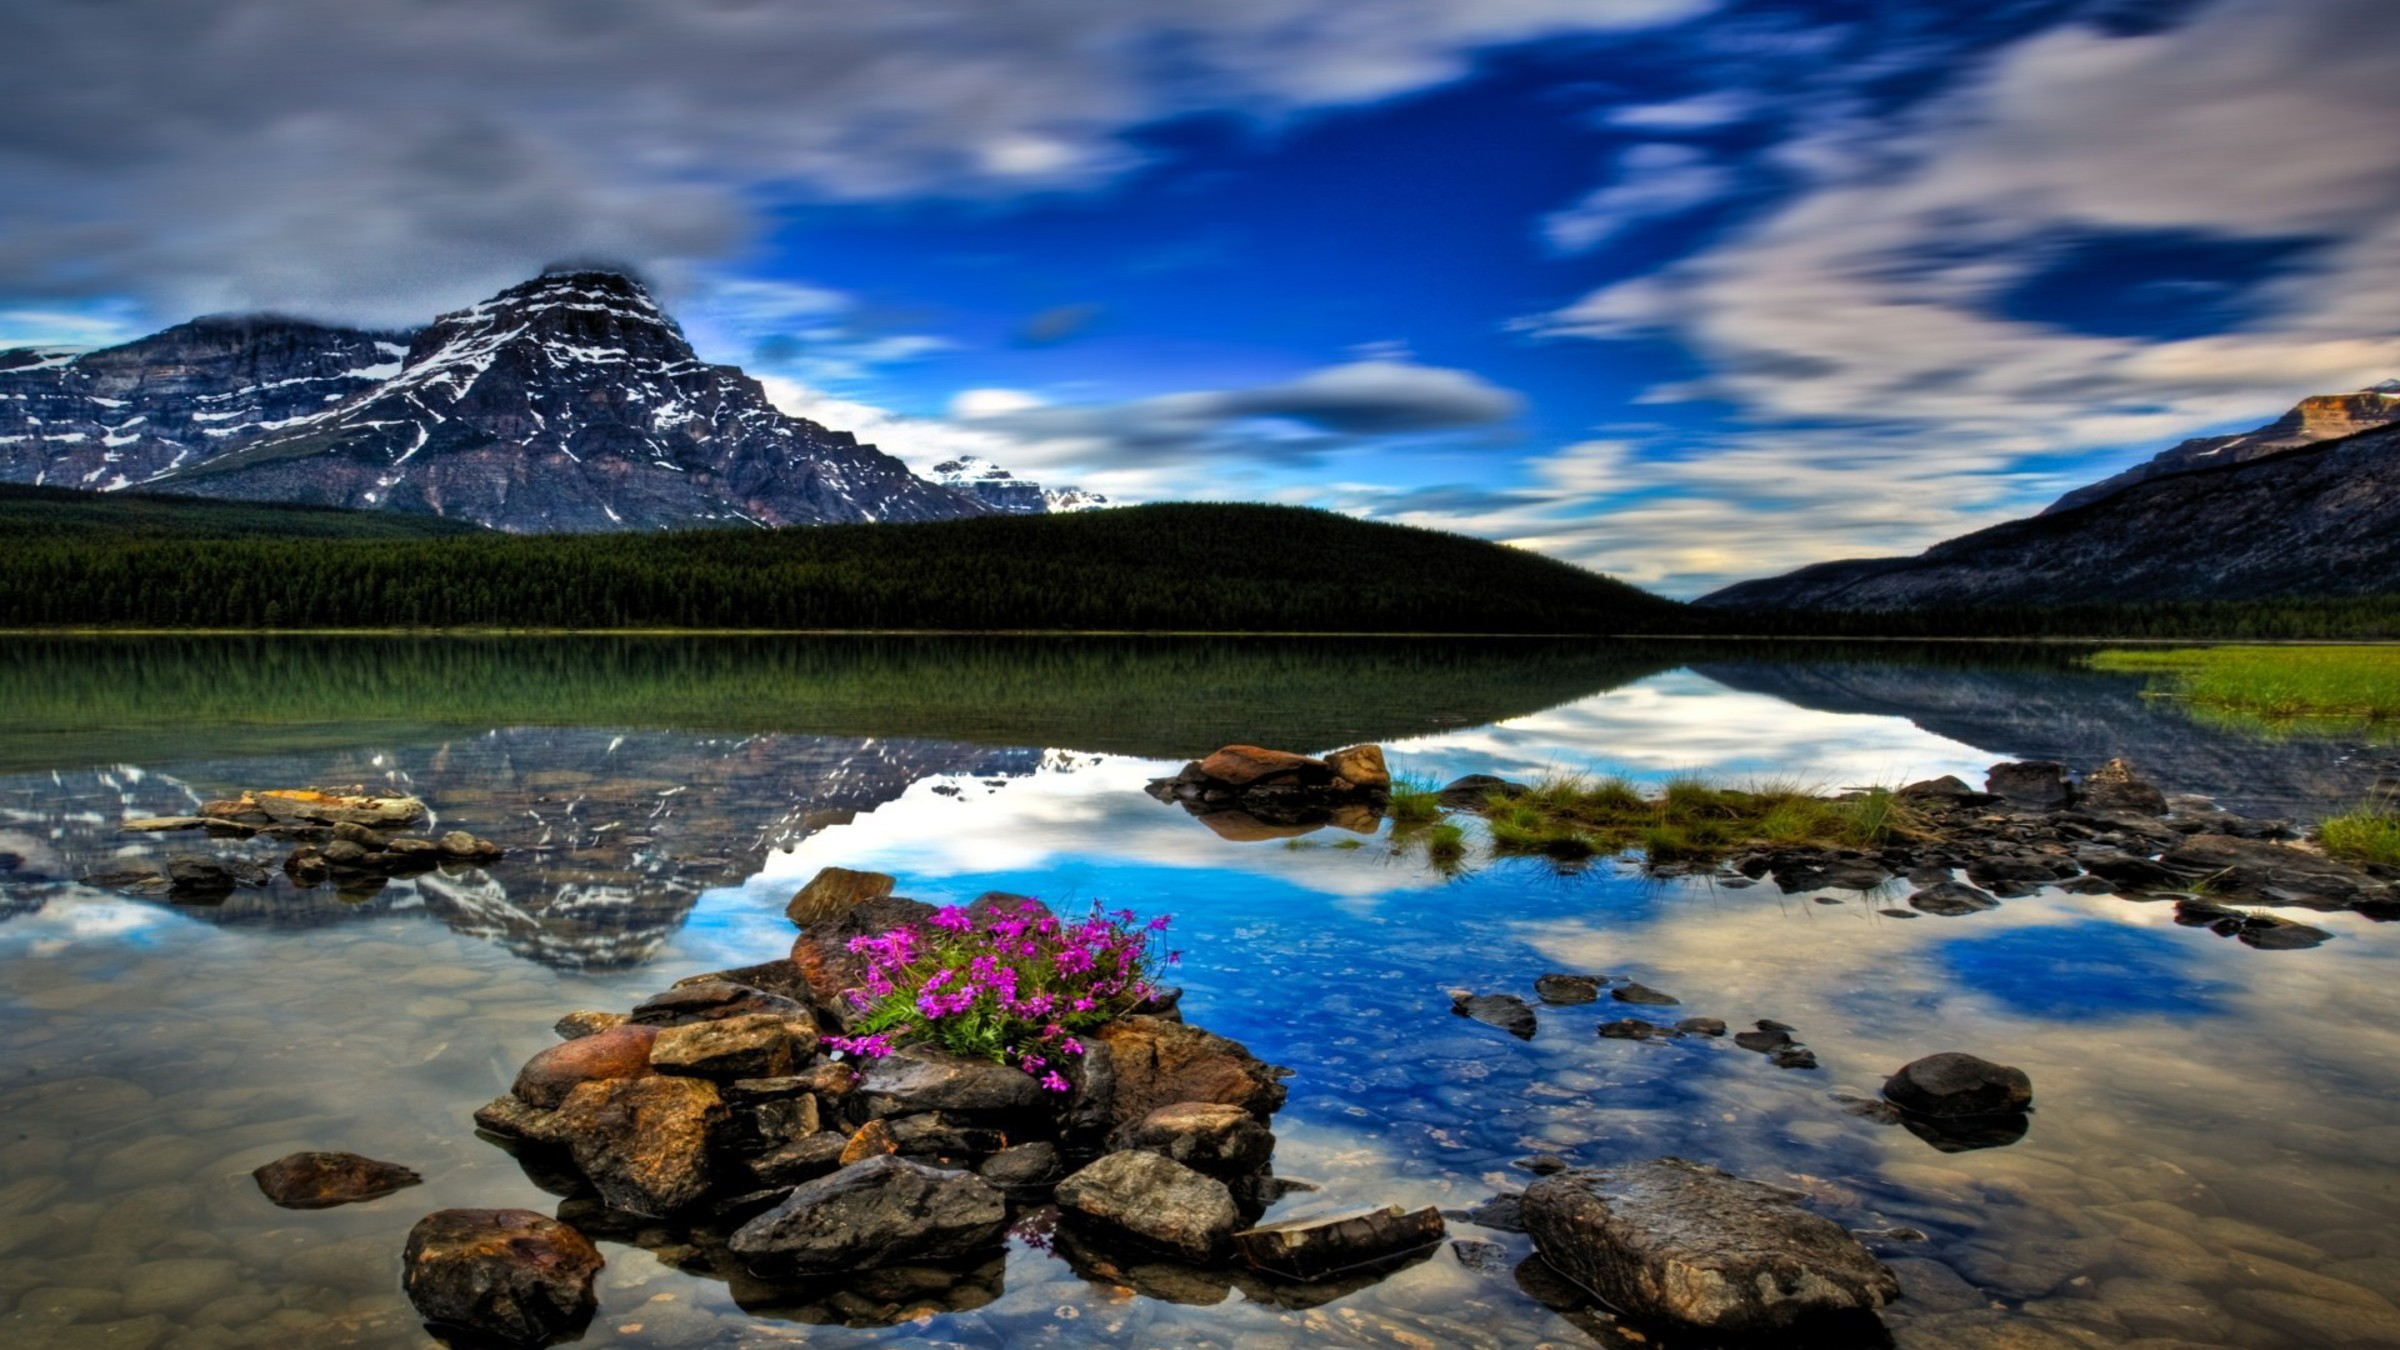 Bow Lake and Flowers, Banff National Park, Alberta, Canada  № 230838  скачать